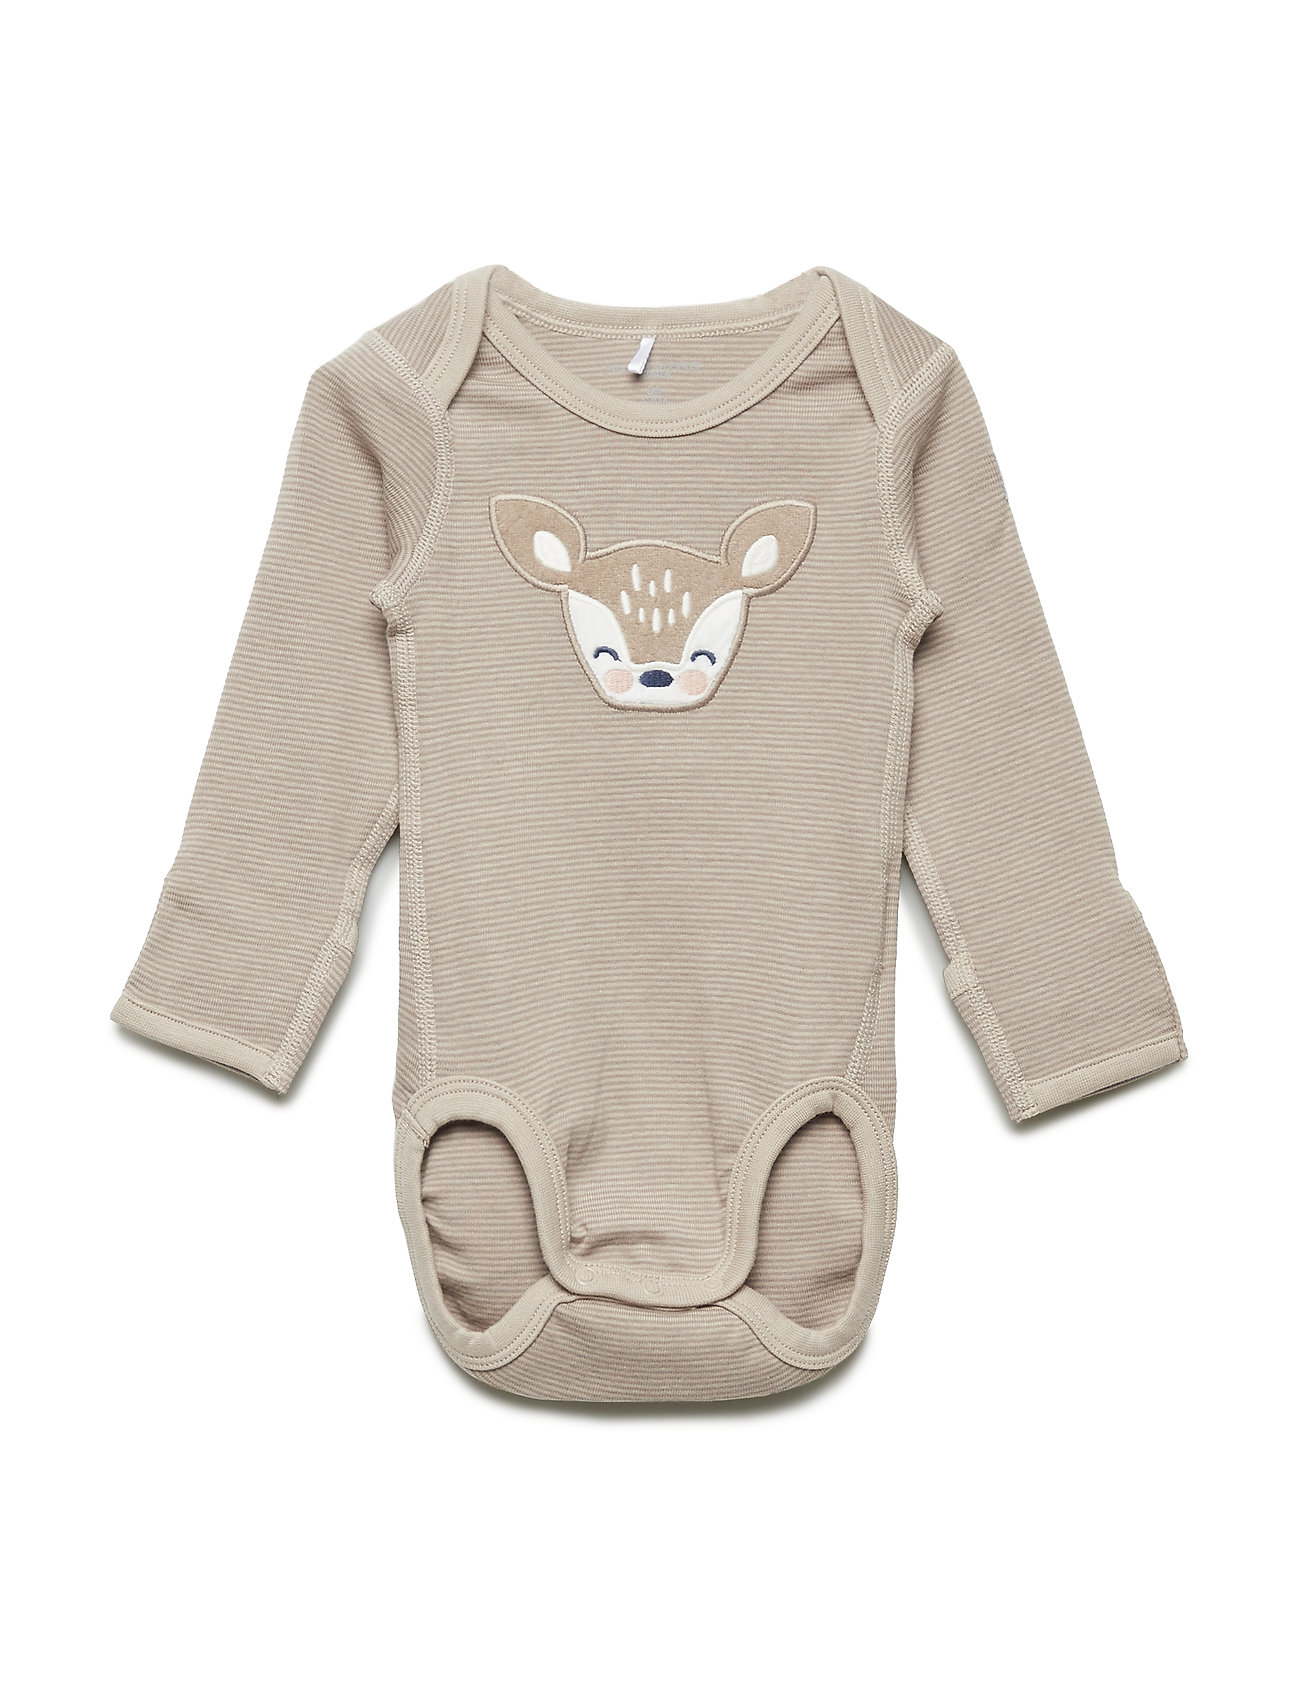 Polarn O. Pyret Body applique l/s Newborn